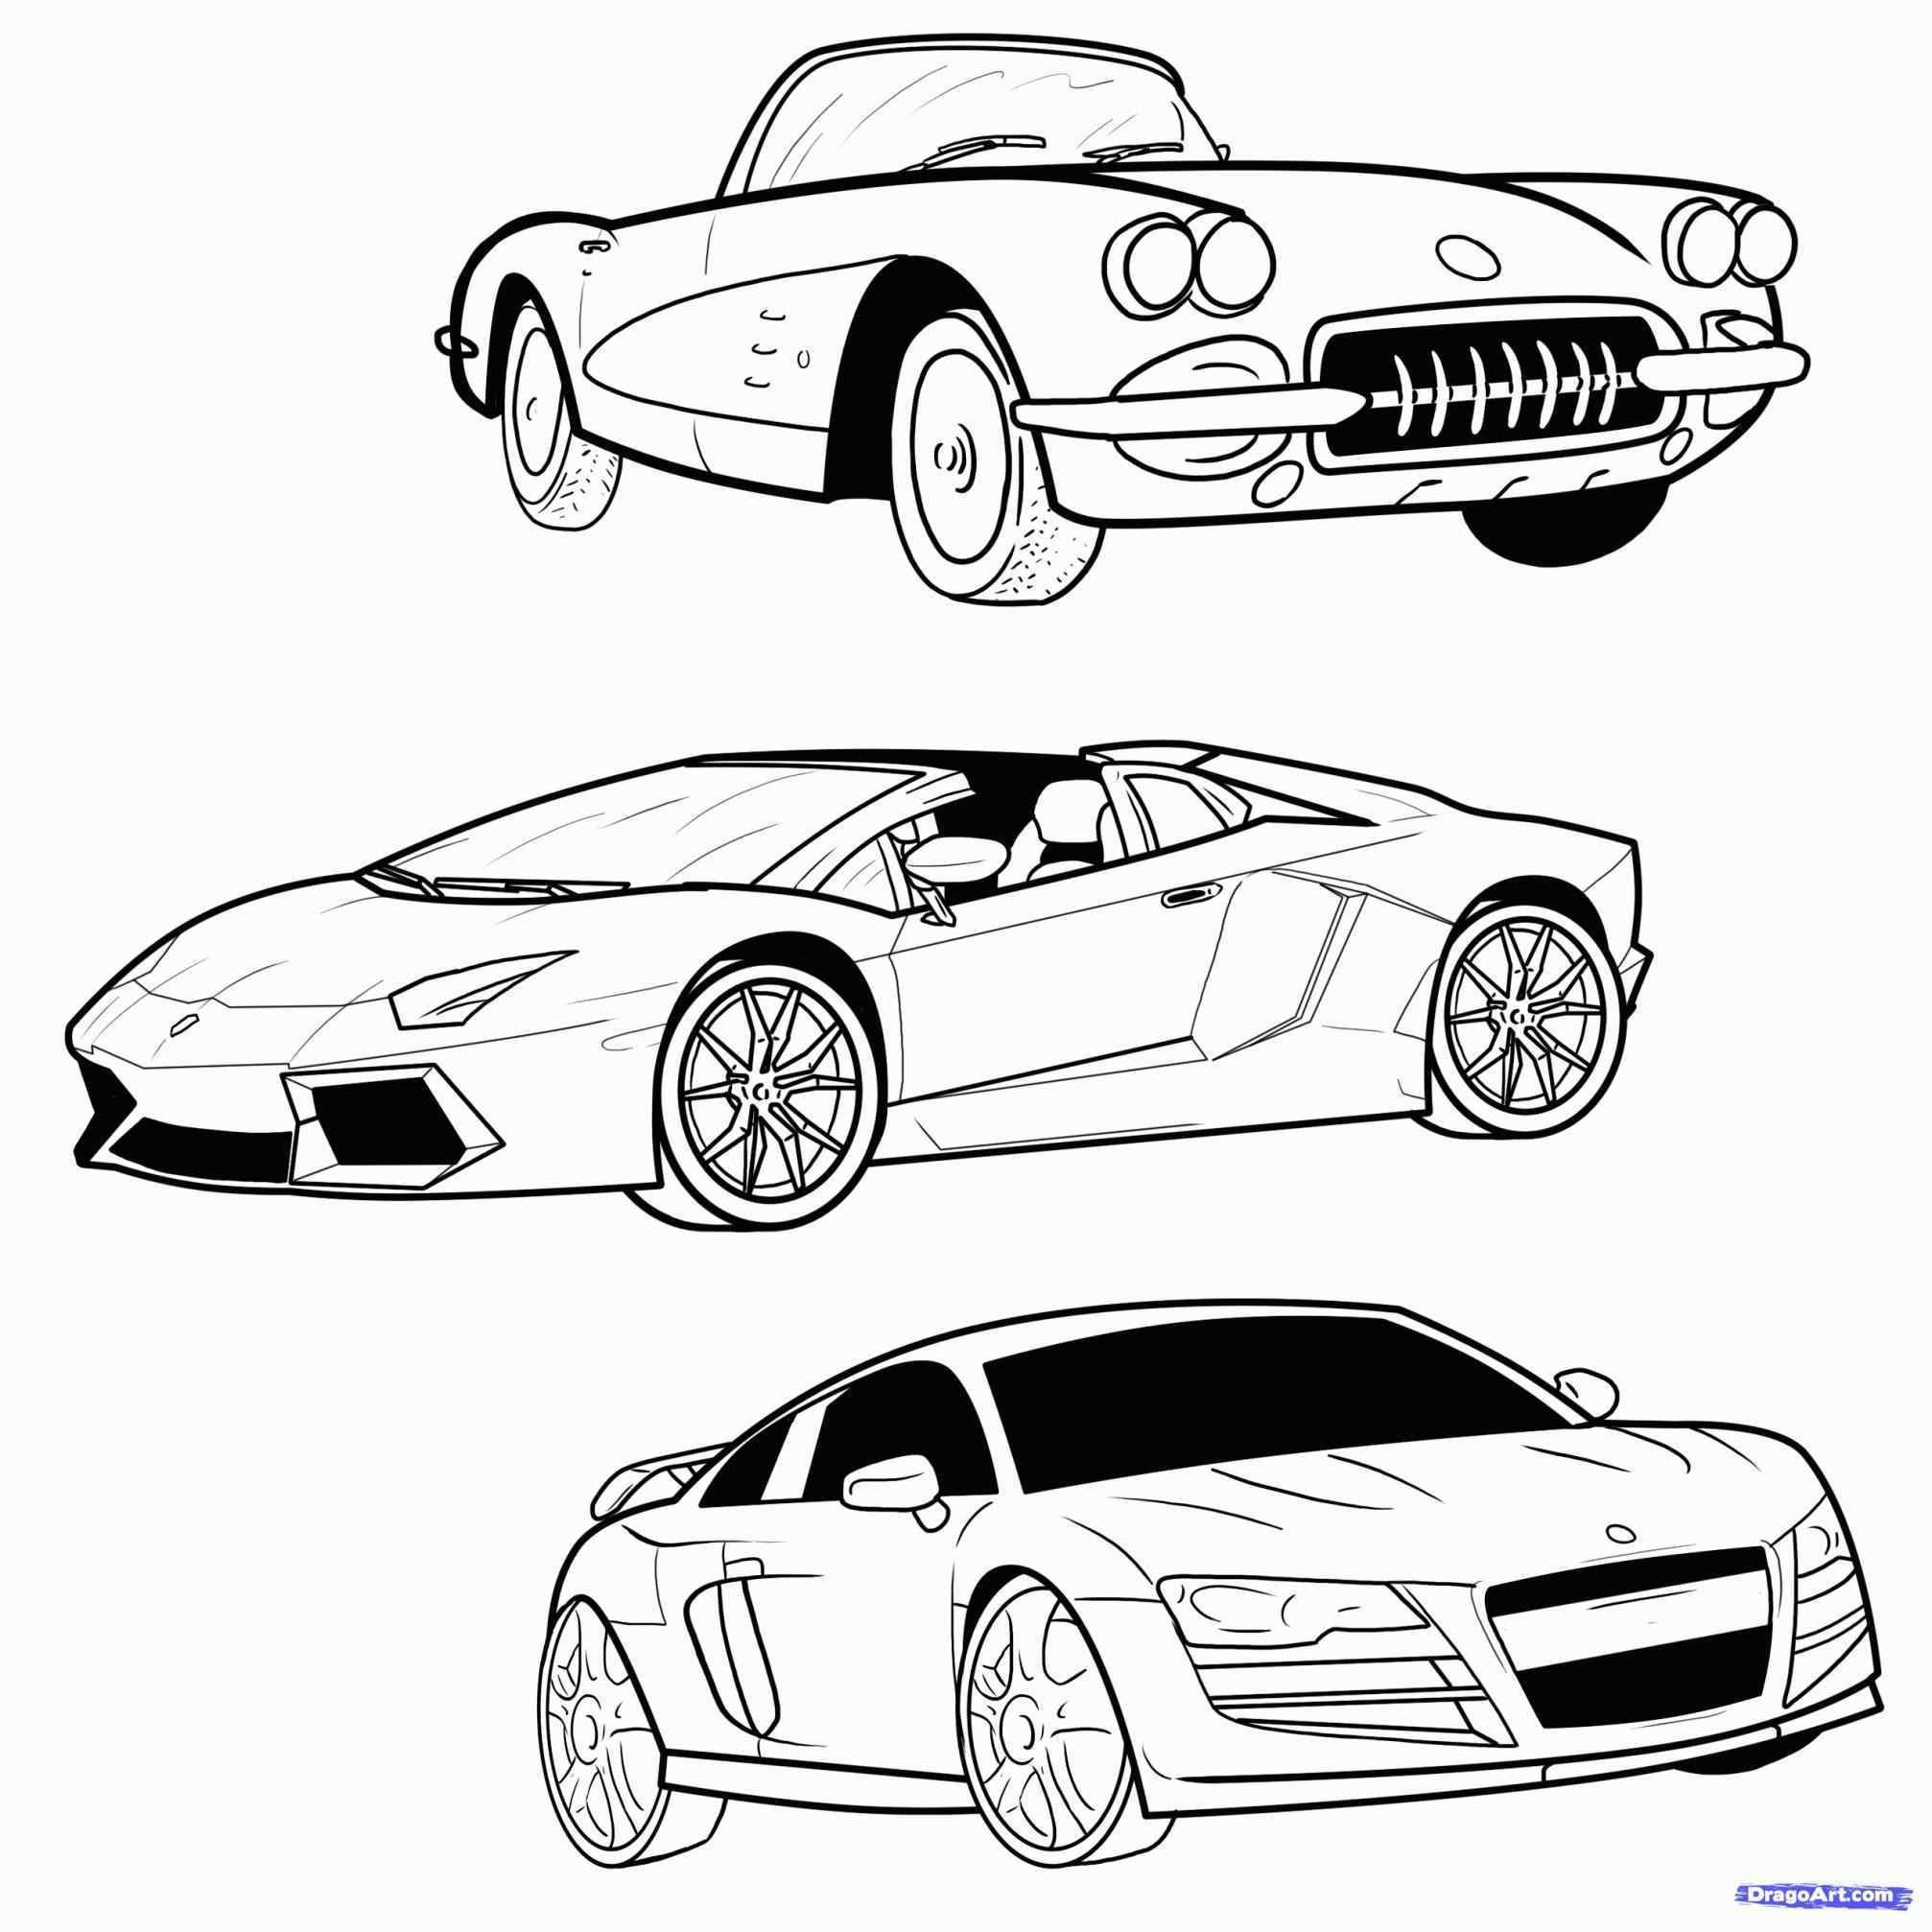 2014x2014 Muscle Car Drawings In Pencil Side View